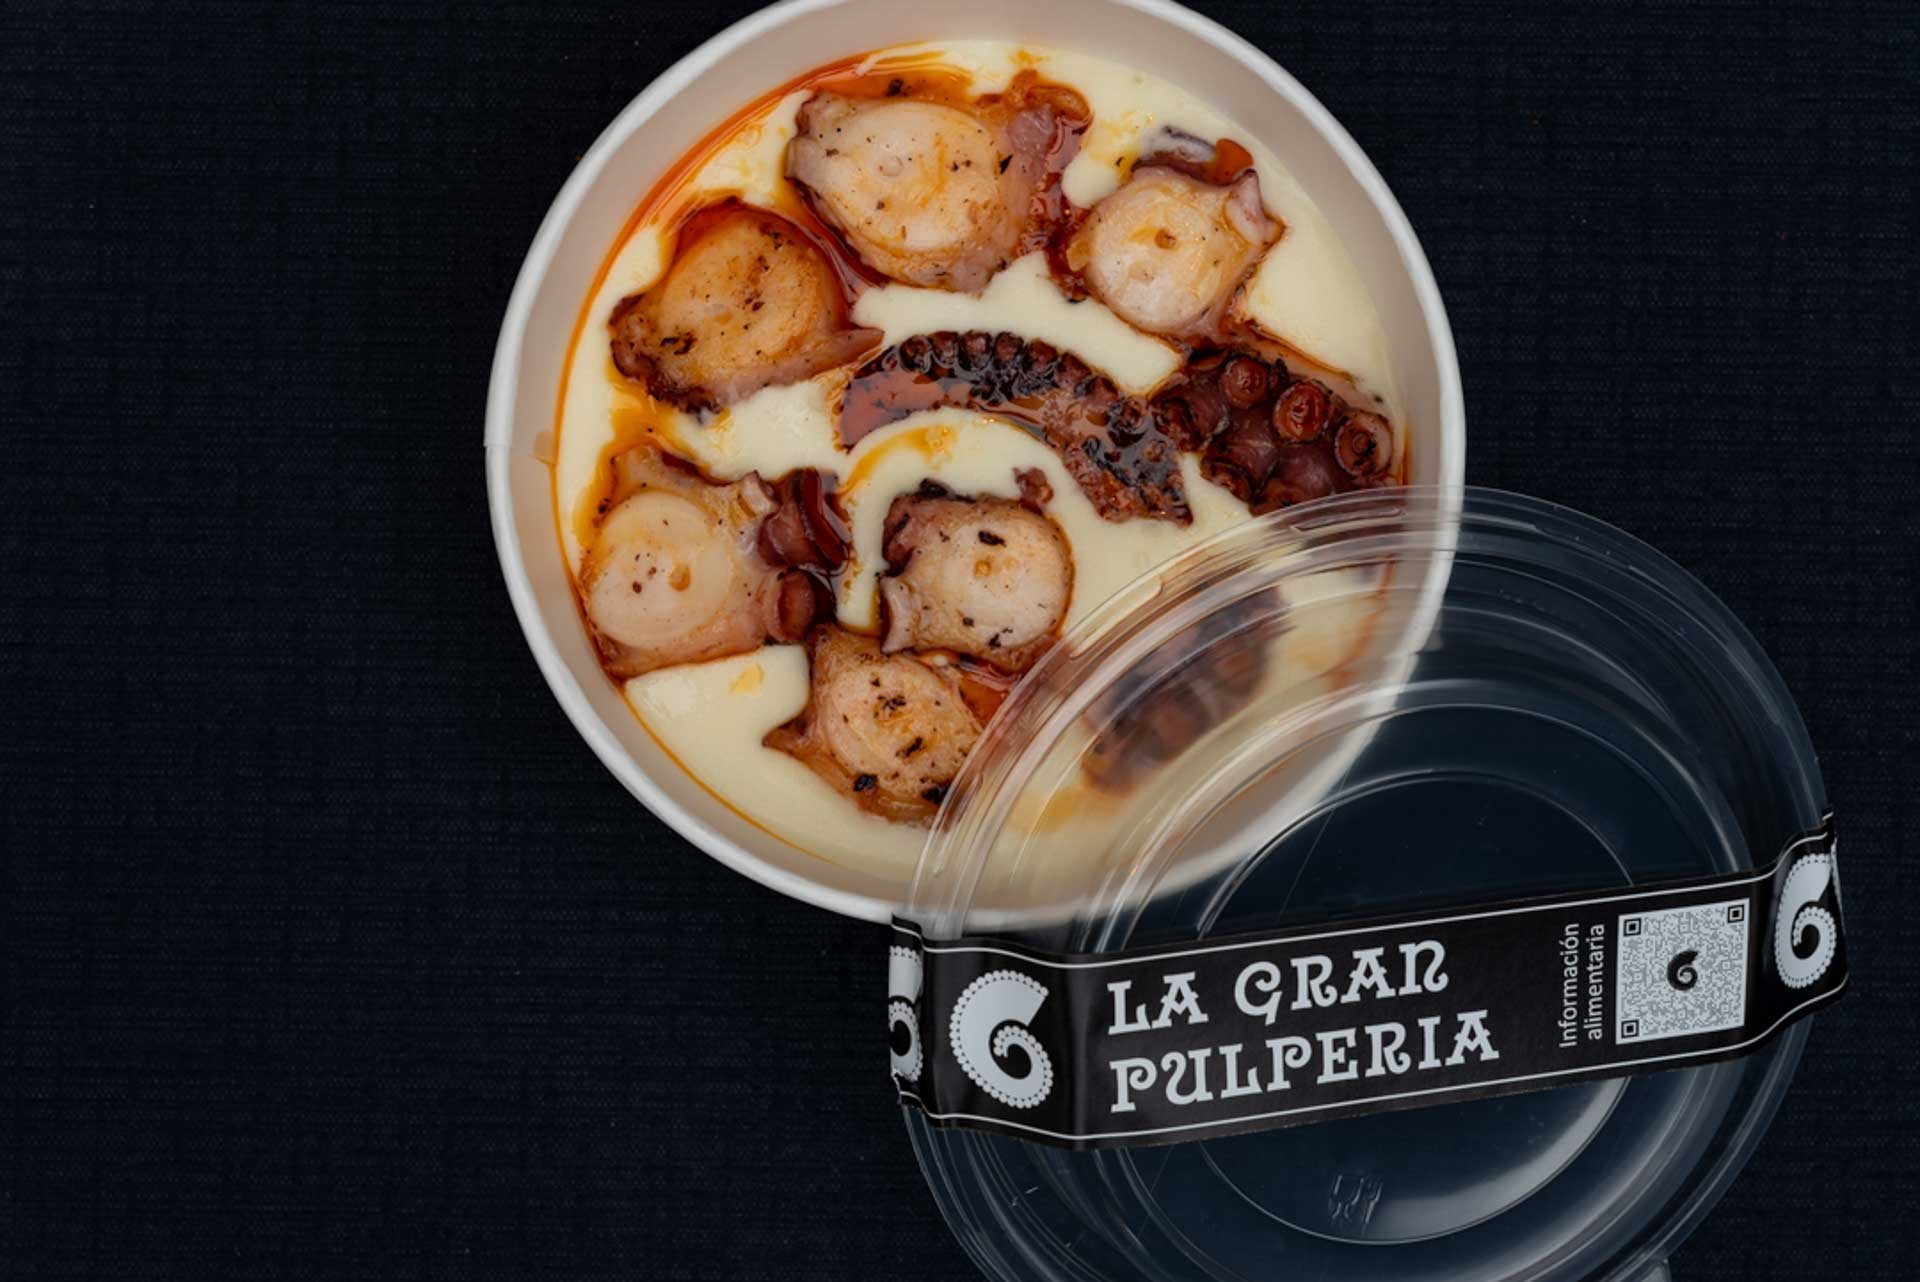 octopus take a way from the great pulperia